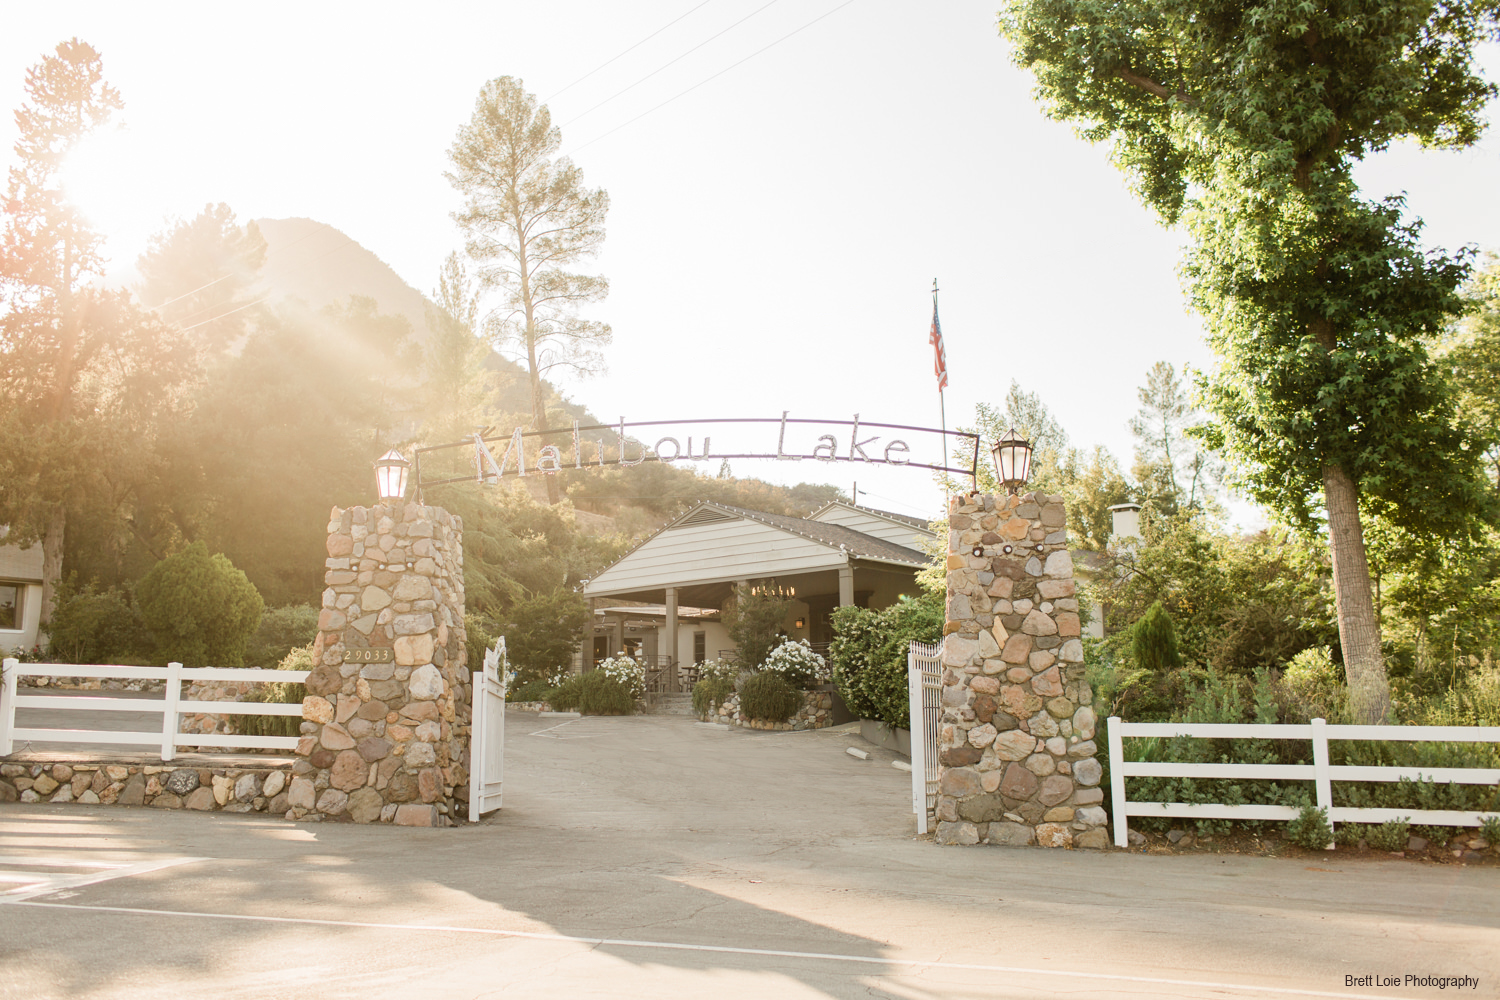 malibou-lake-wedding-venue-malibu-event-planner-No-Wire.jpg